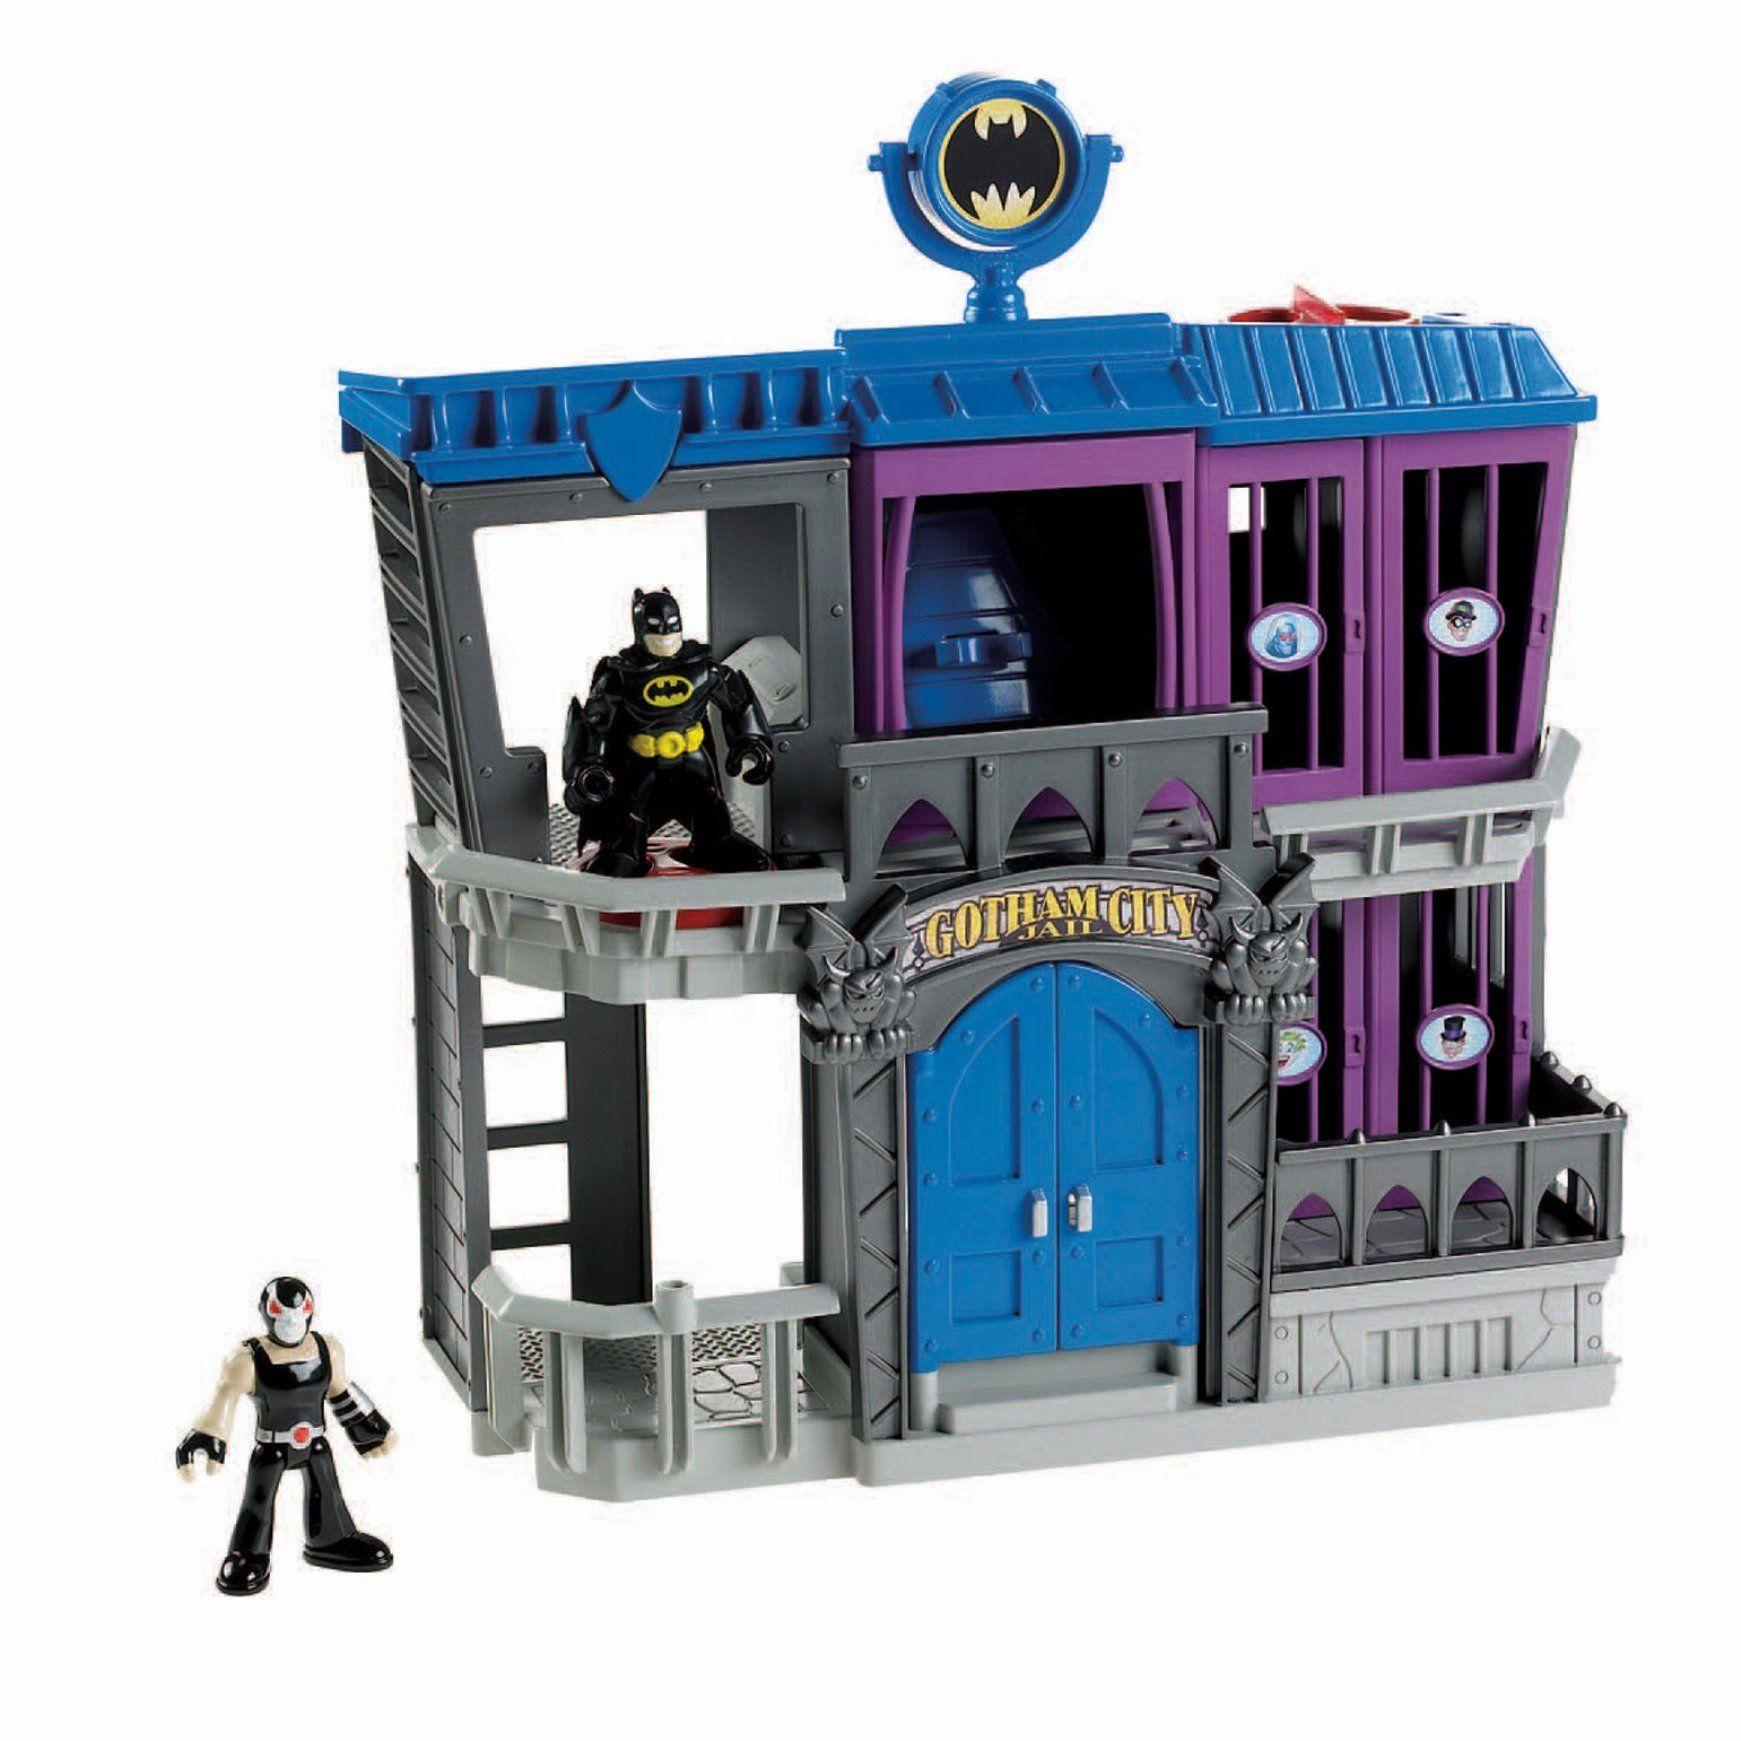 Fisher Price Imaginext DC Super Friends Gotham City Jail Playset